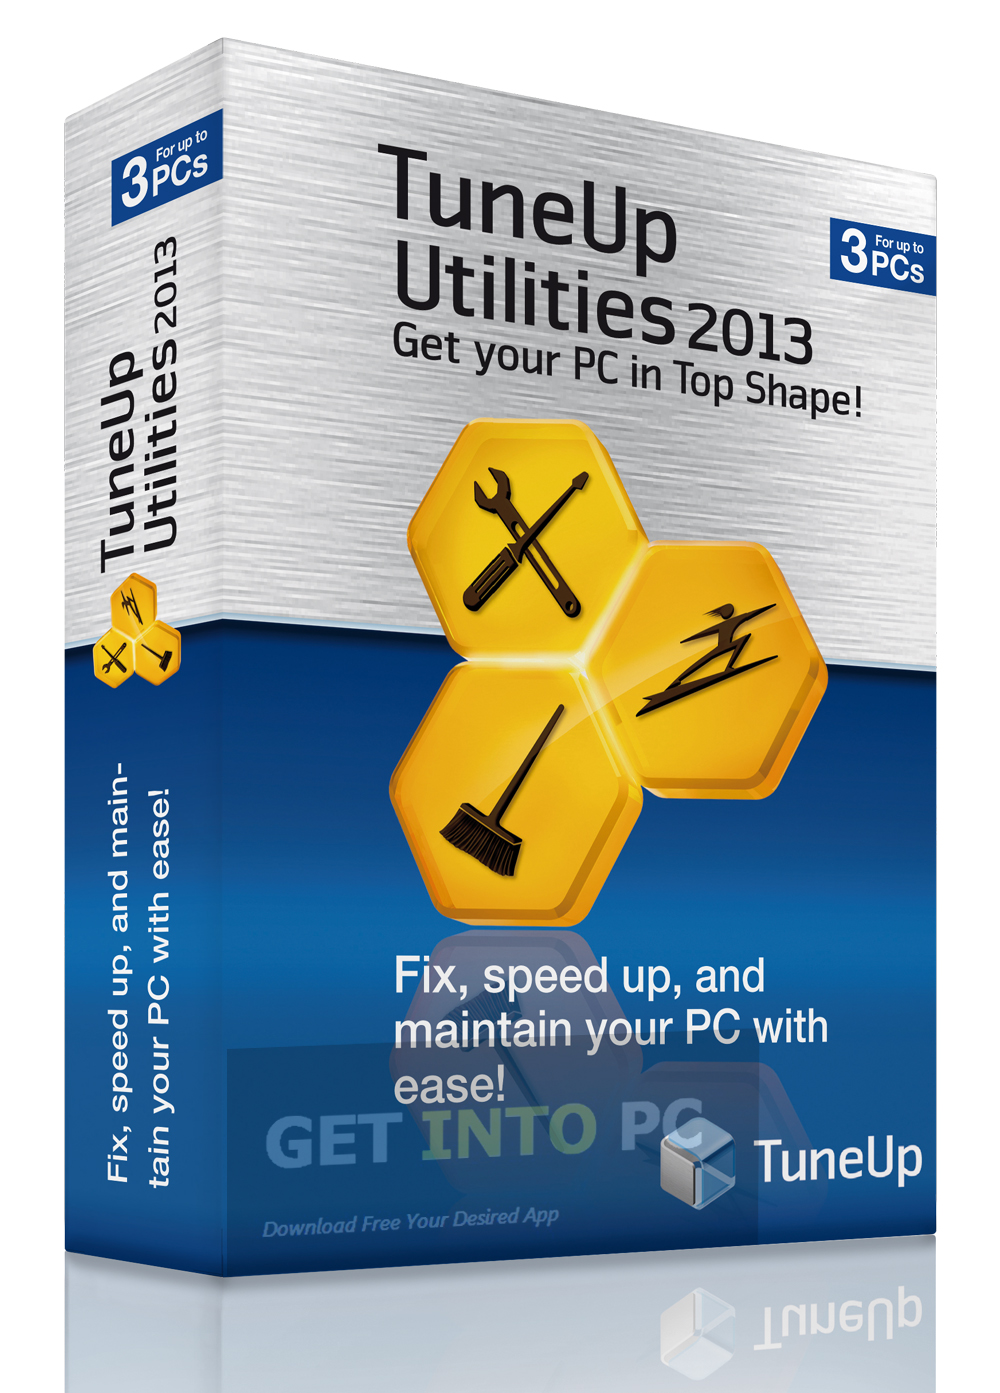 Tuneup utilities 2015 software keygen: tuneup utilities 2015: a.